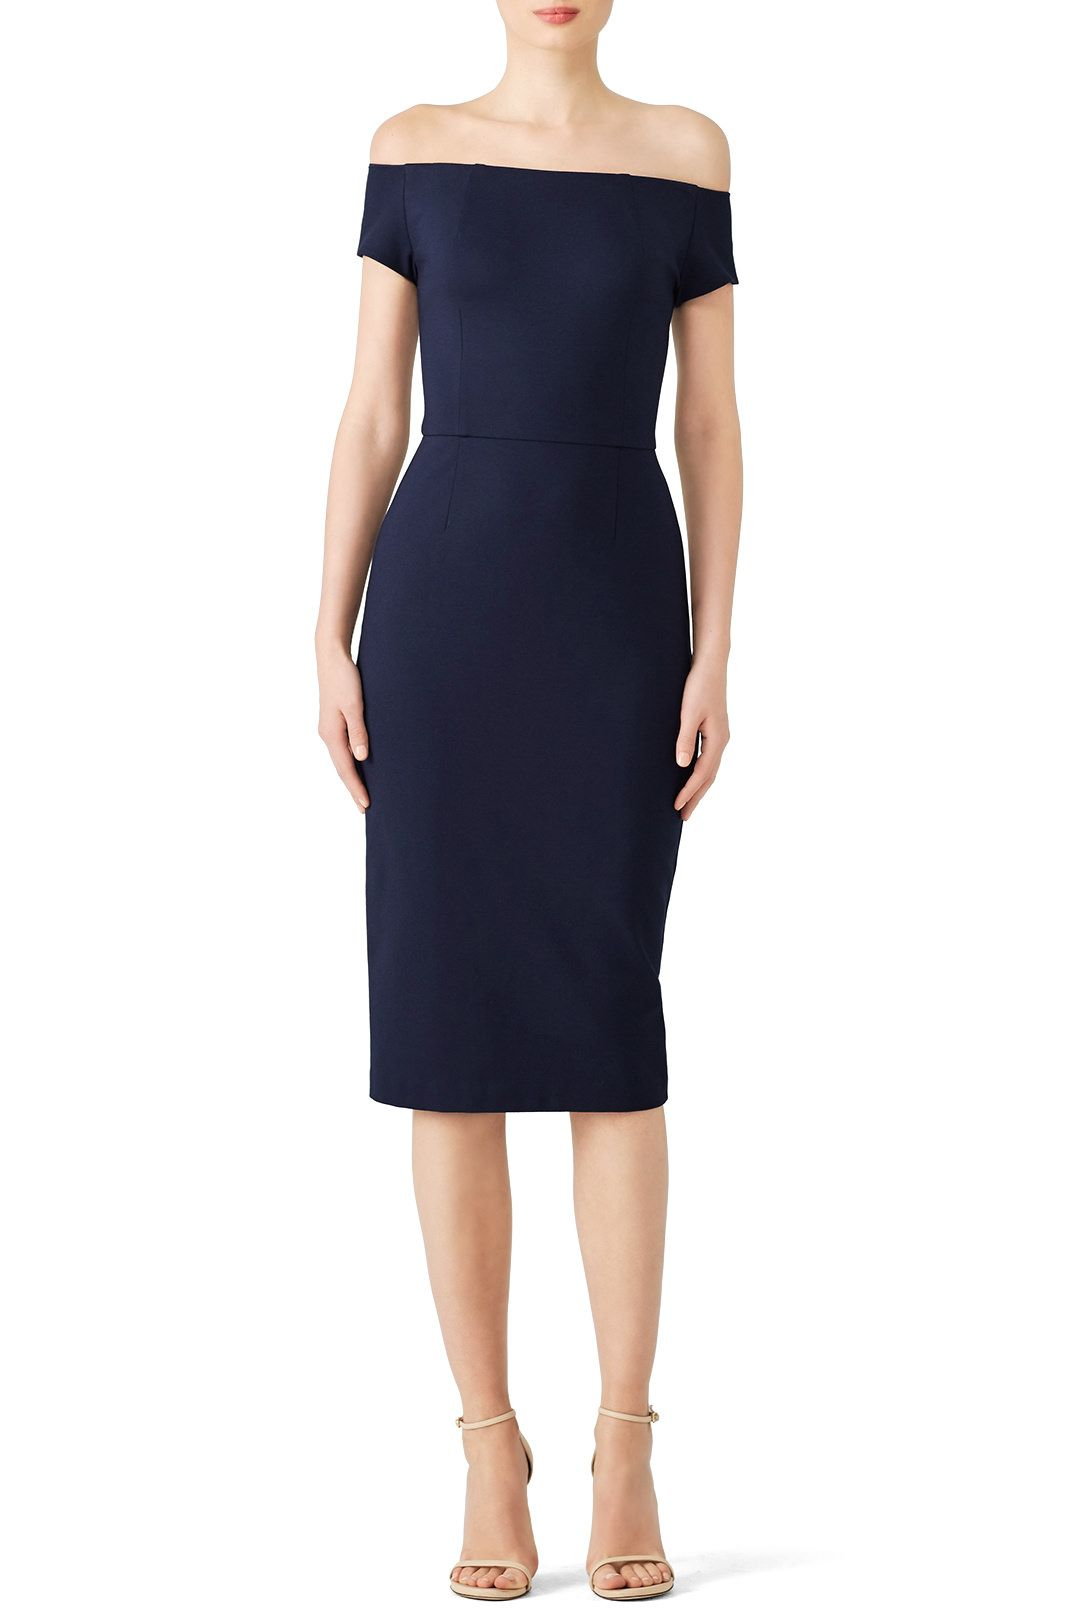 abeb4bac034b Rent Indigo Sheath by Trina Turk for $30 - $45 only at Rent the Runway.